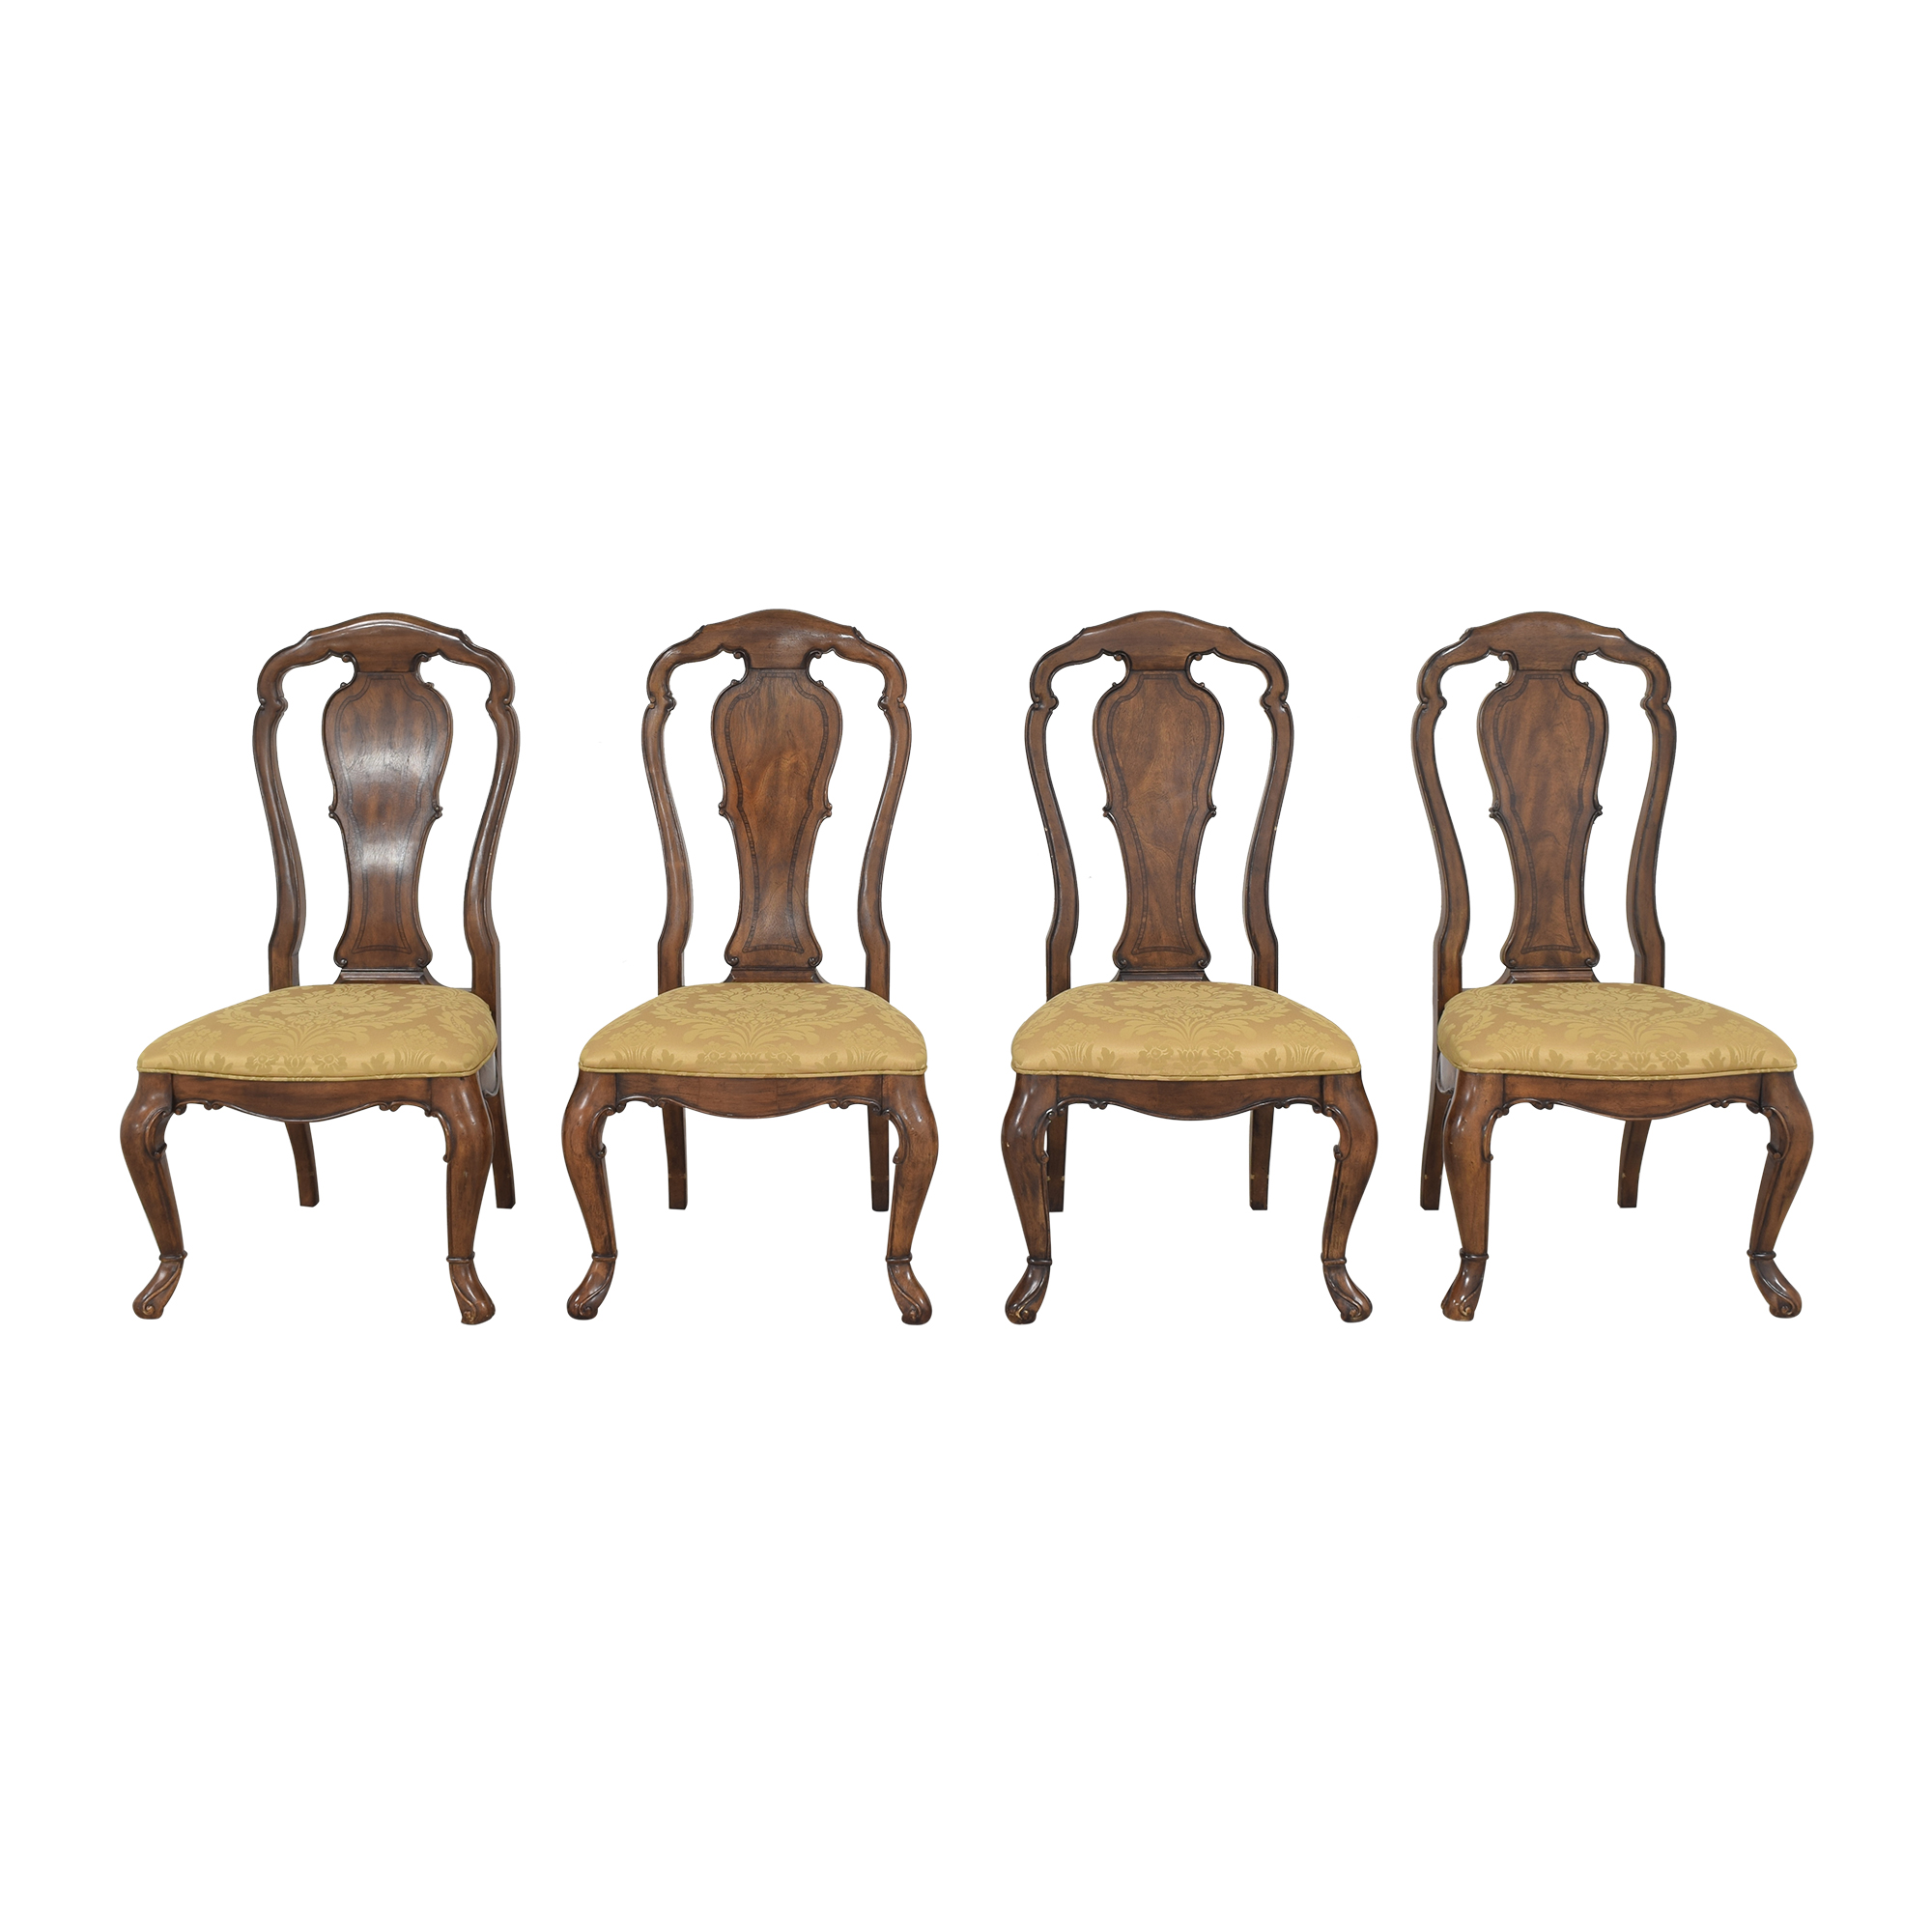 buy Thomasville Thomasville Ernest Hemingway Granada Dining Chairs online